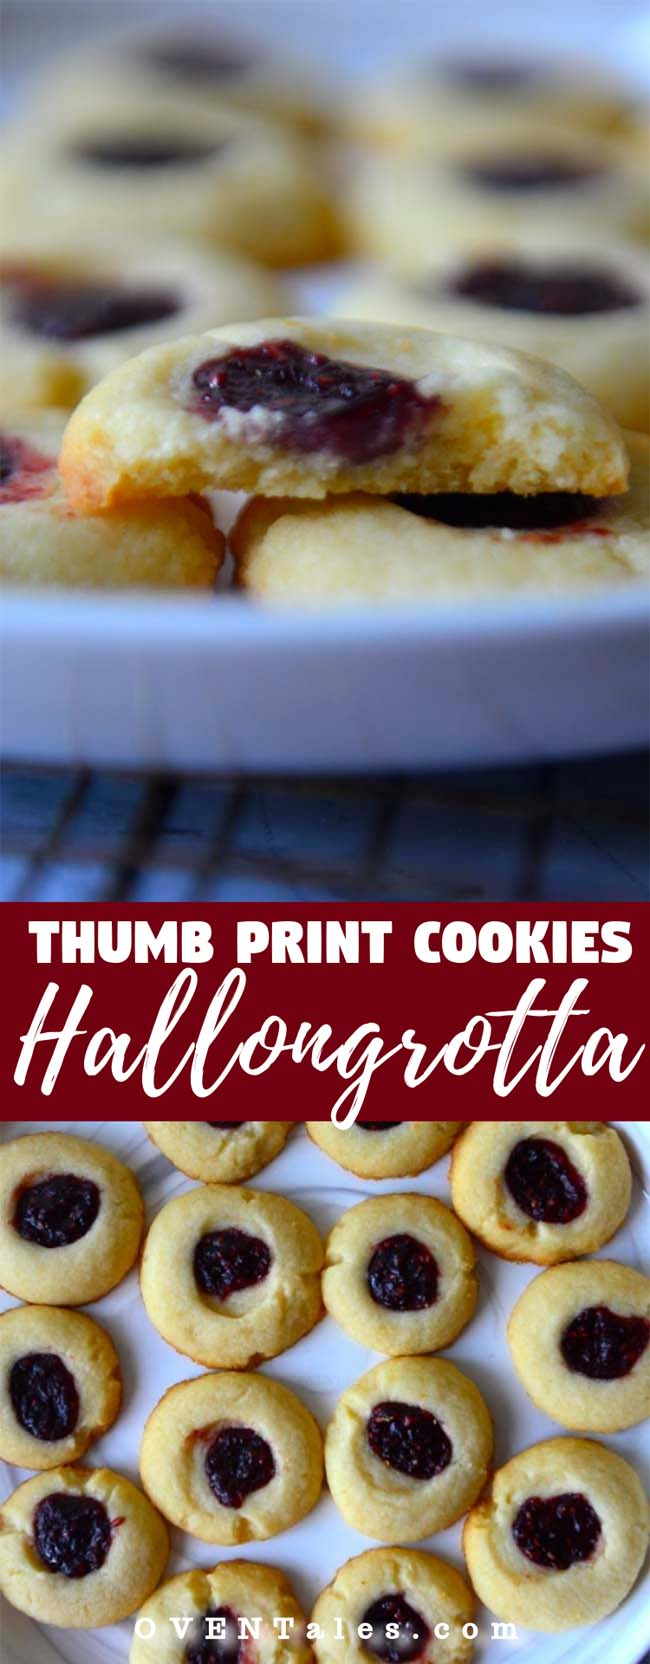 Thumb Print Cookies or the Swedish Hallongrotta